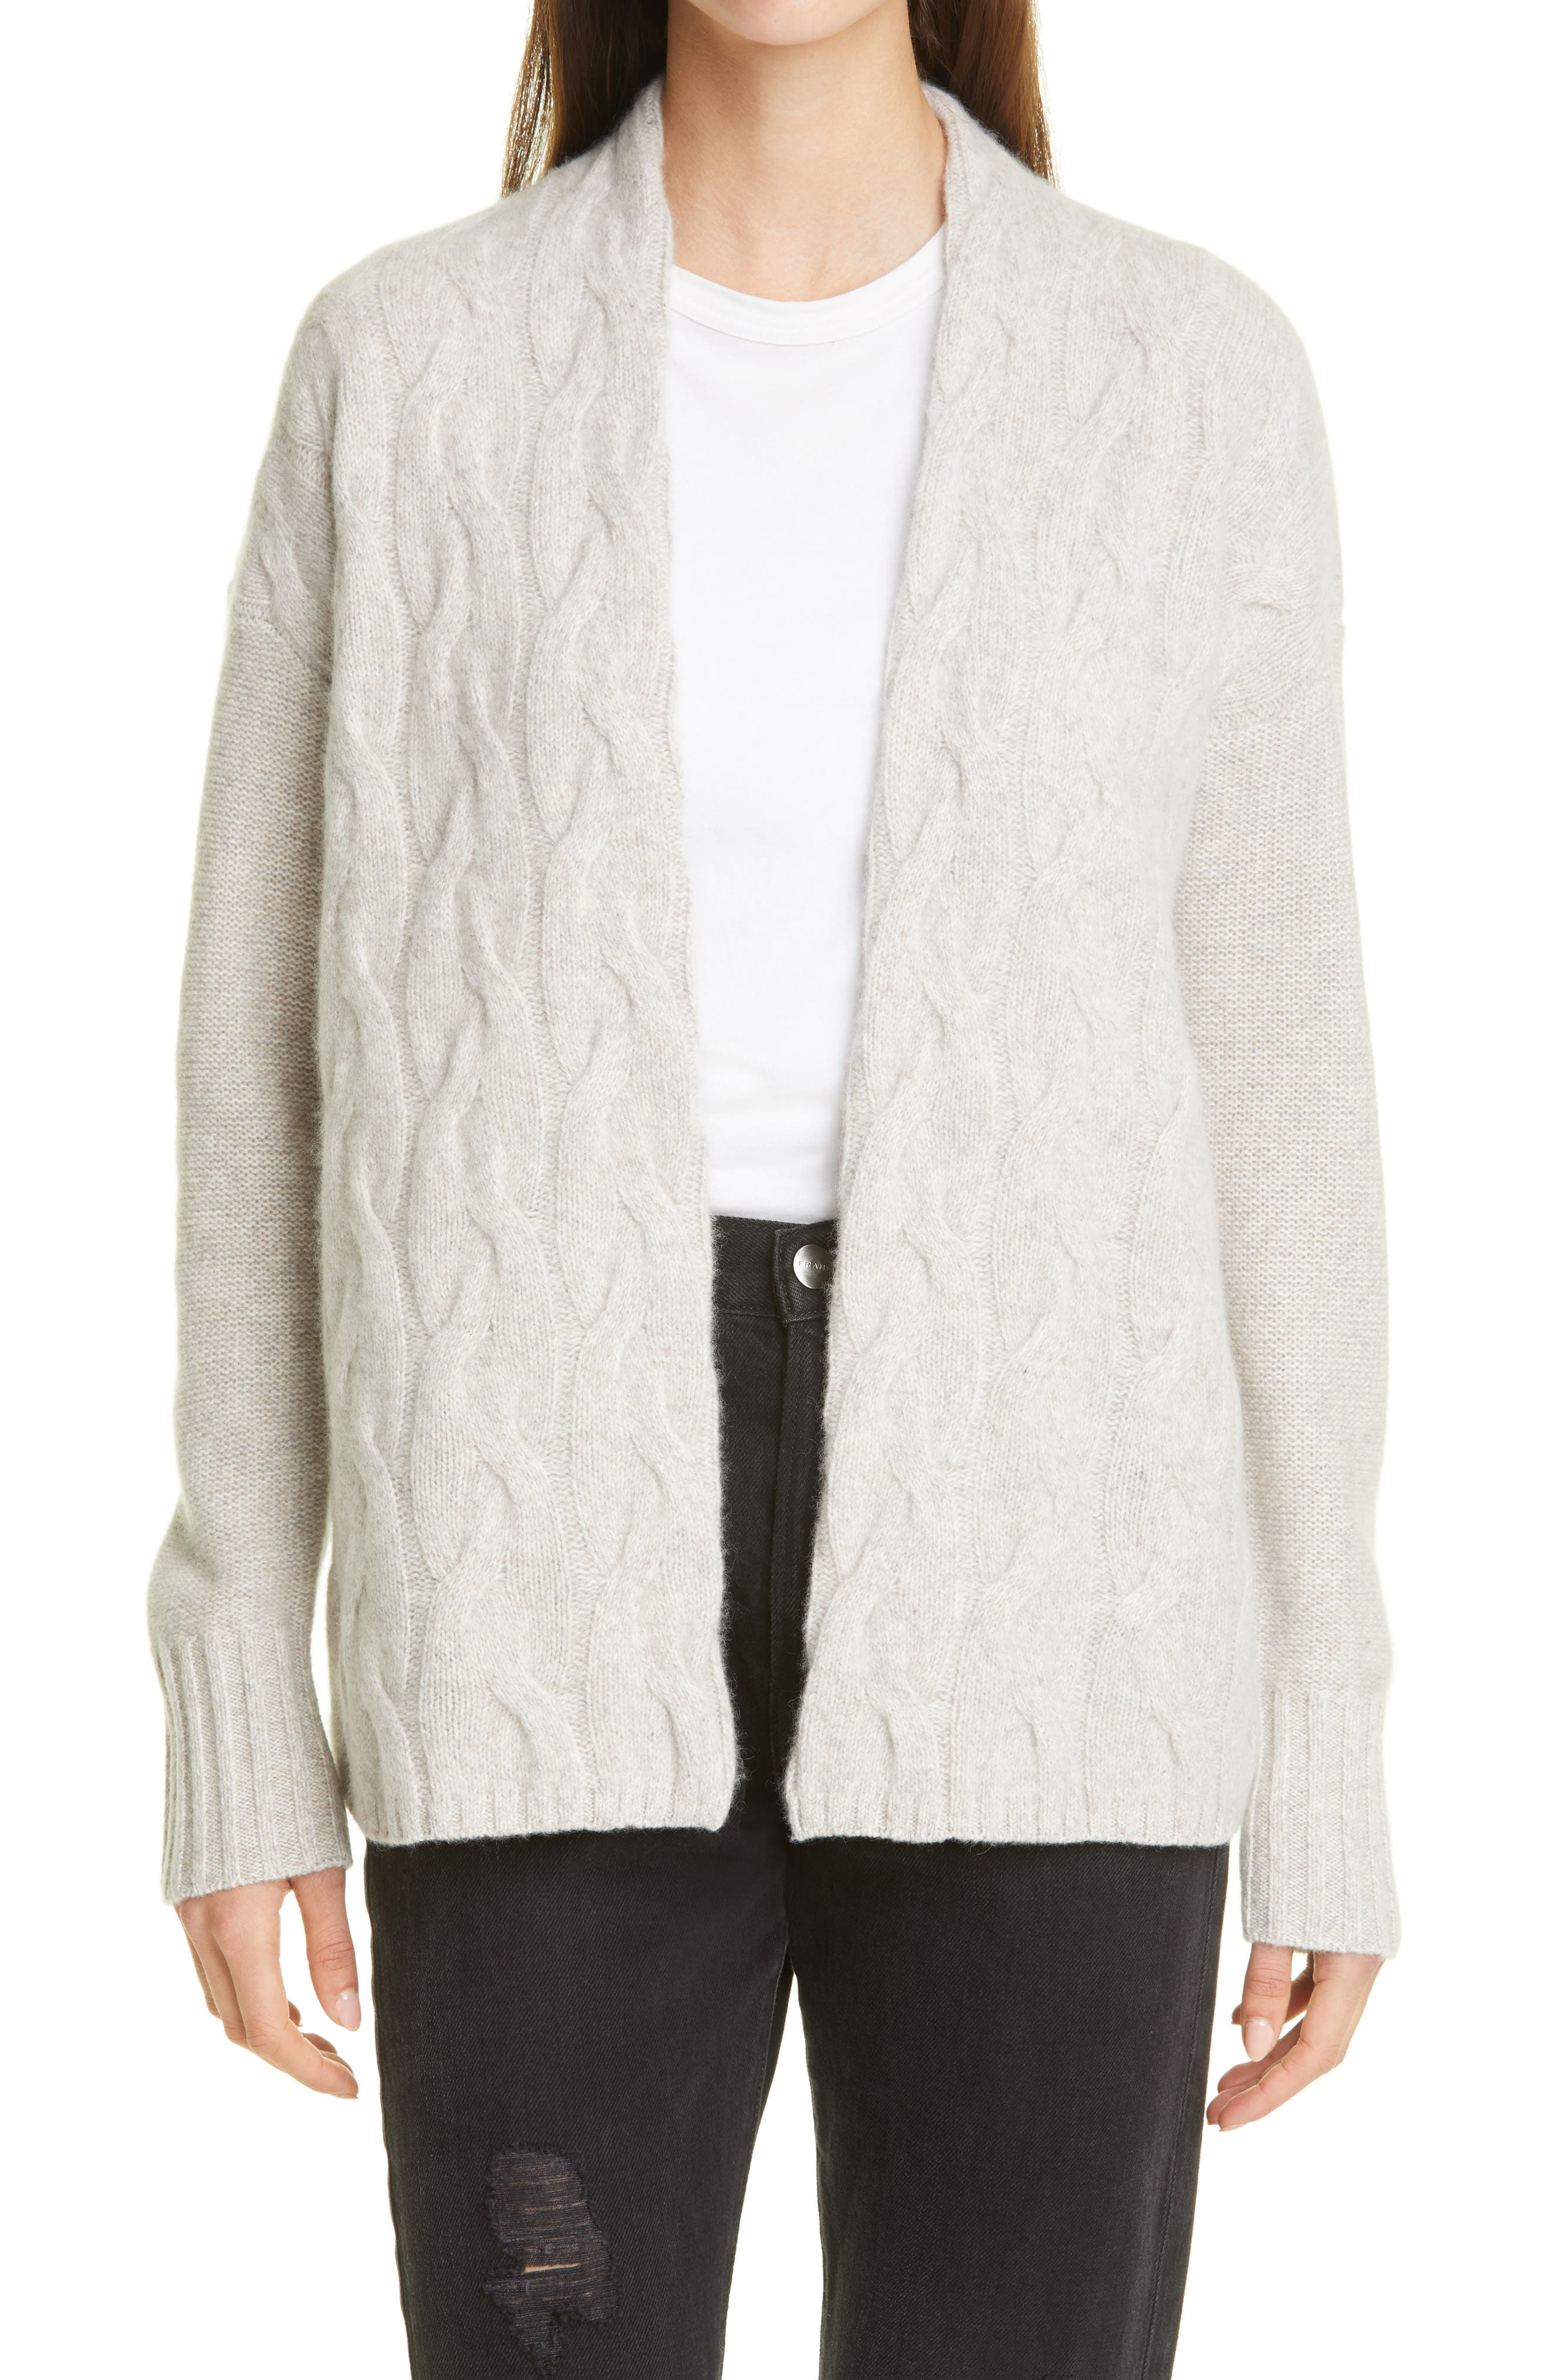 Image of Nordstrom Signature Nordstrom Cable Knit Cashmere Cardigan